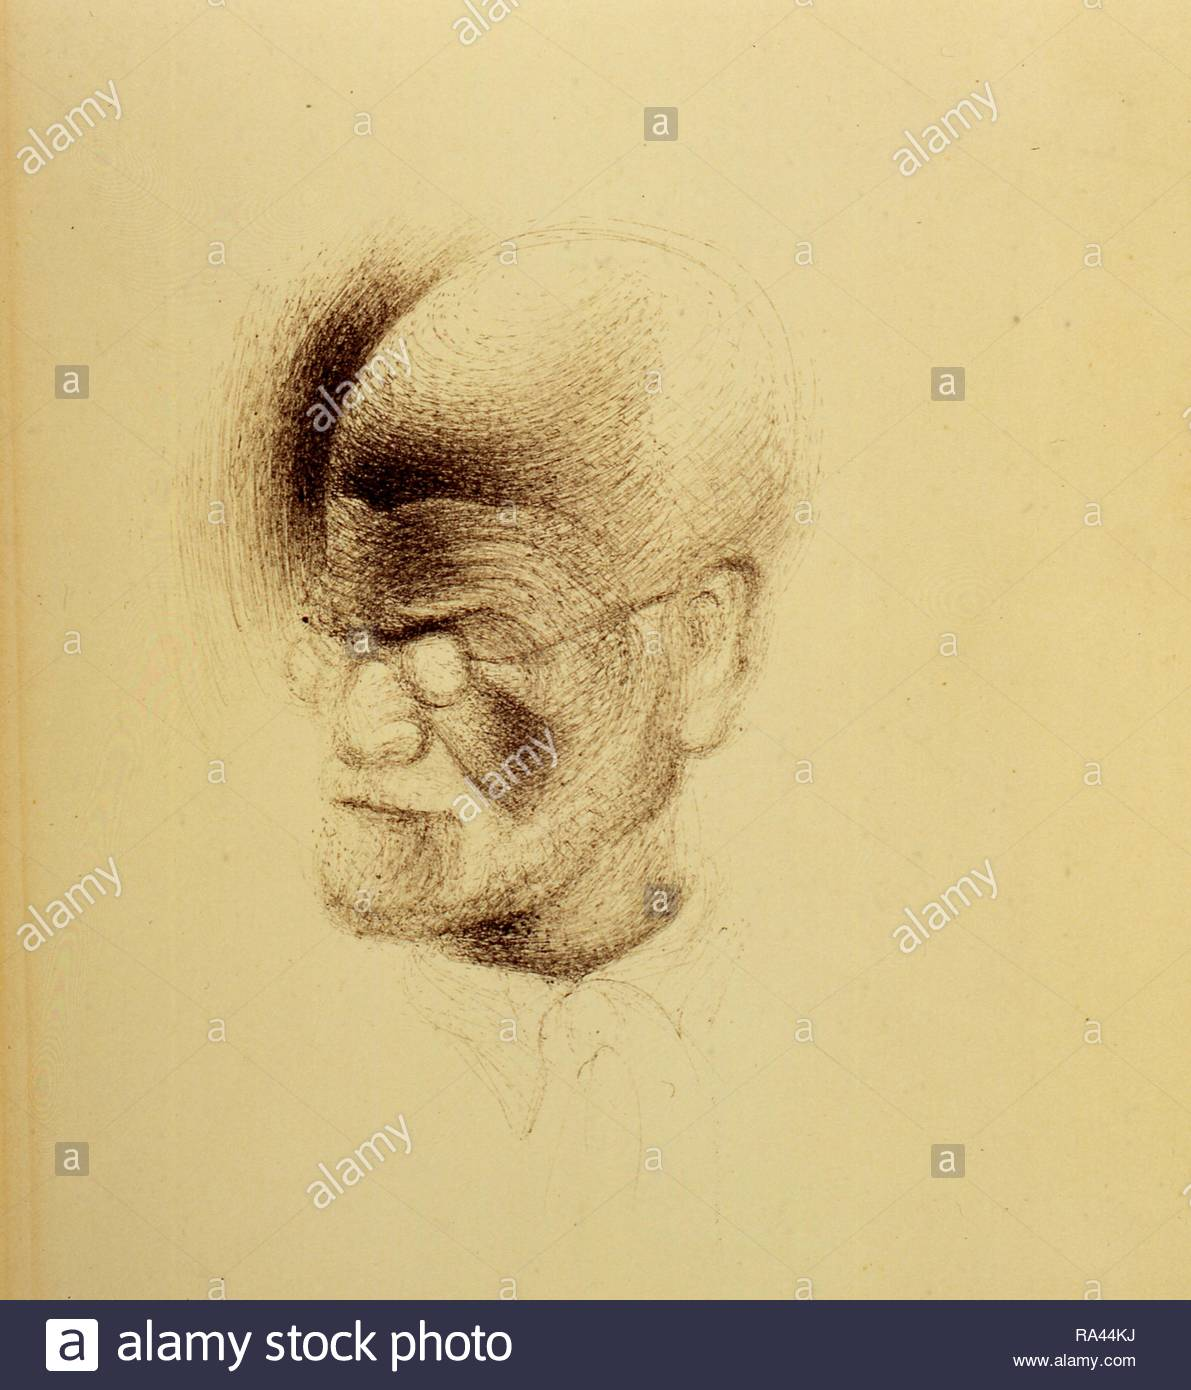 Portrait of Sigmund Freud. Museum: Freud Museum London. Author: DALI, SALVADOR. Copyright: This artwork is not in public domain. It is your responsibility to obtain all necessary third party permissions from the copyright handler in your country prior to publication. - Stock Image